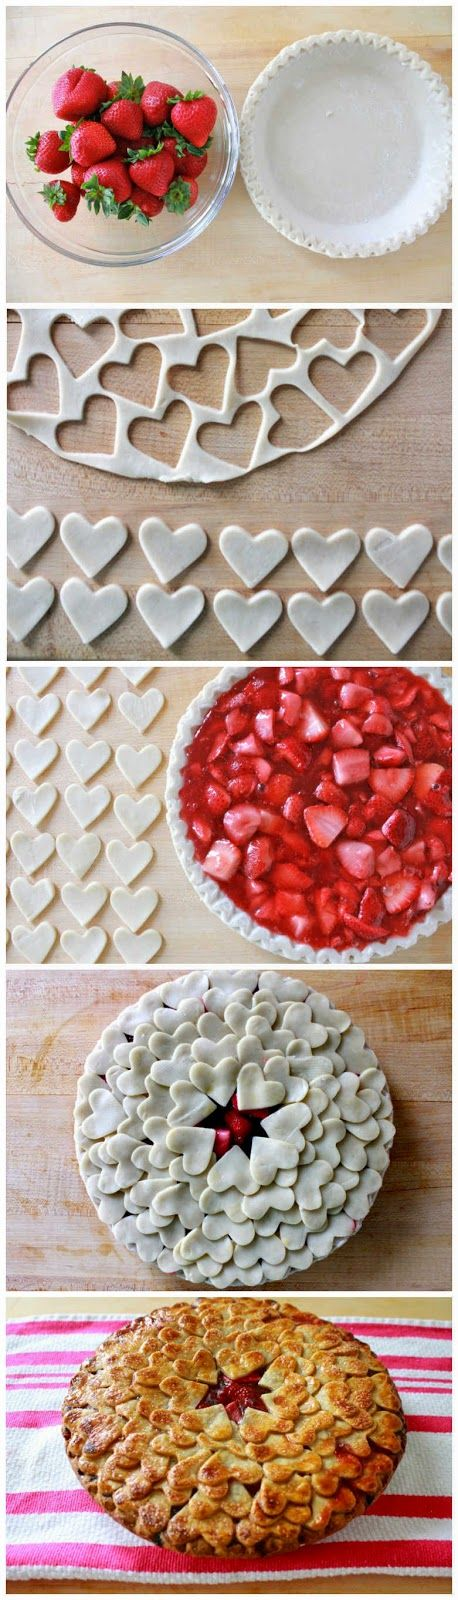 Strawberry Heart Pie - Sweetfinders